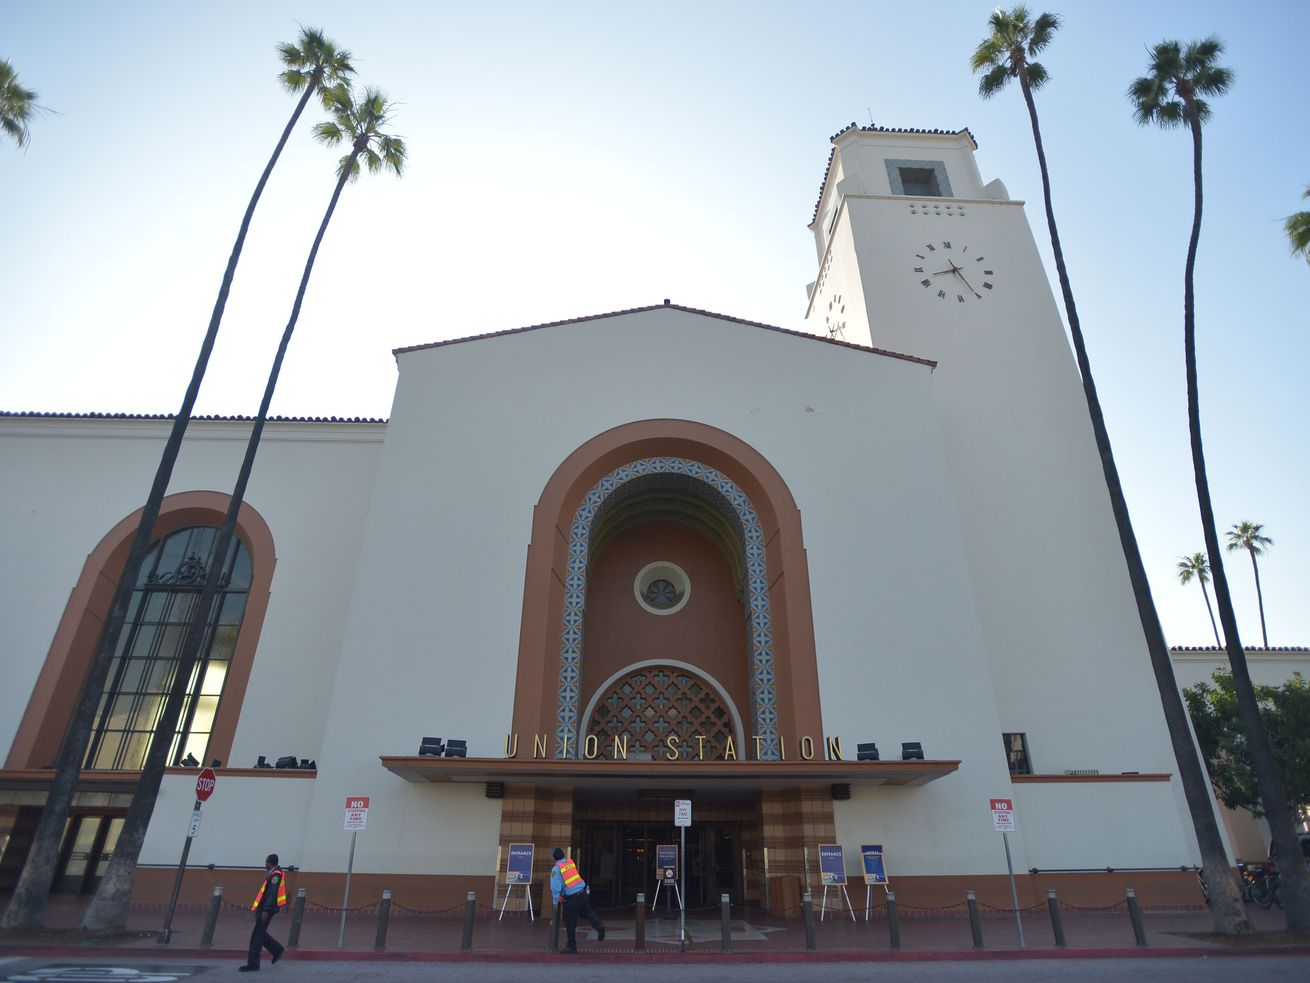 Link Union Station is aimed at increasing the station's capacity, for both trains and passengers.